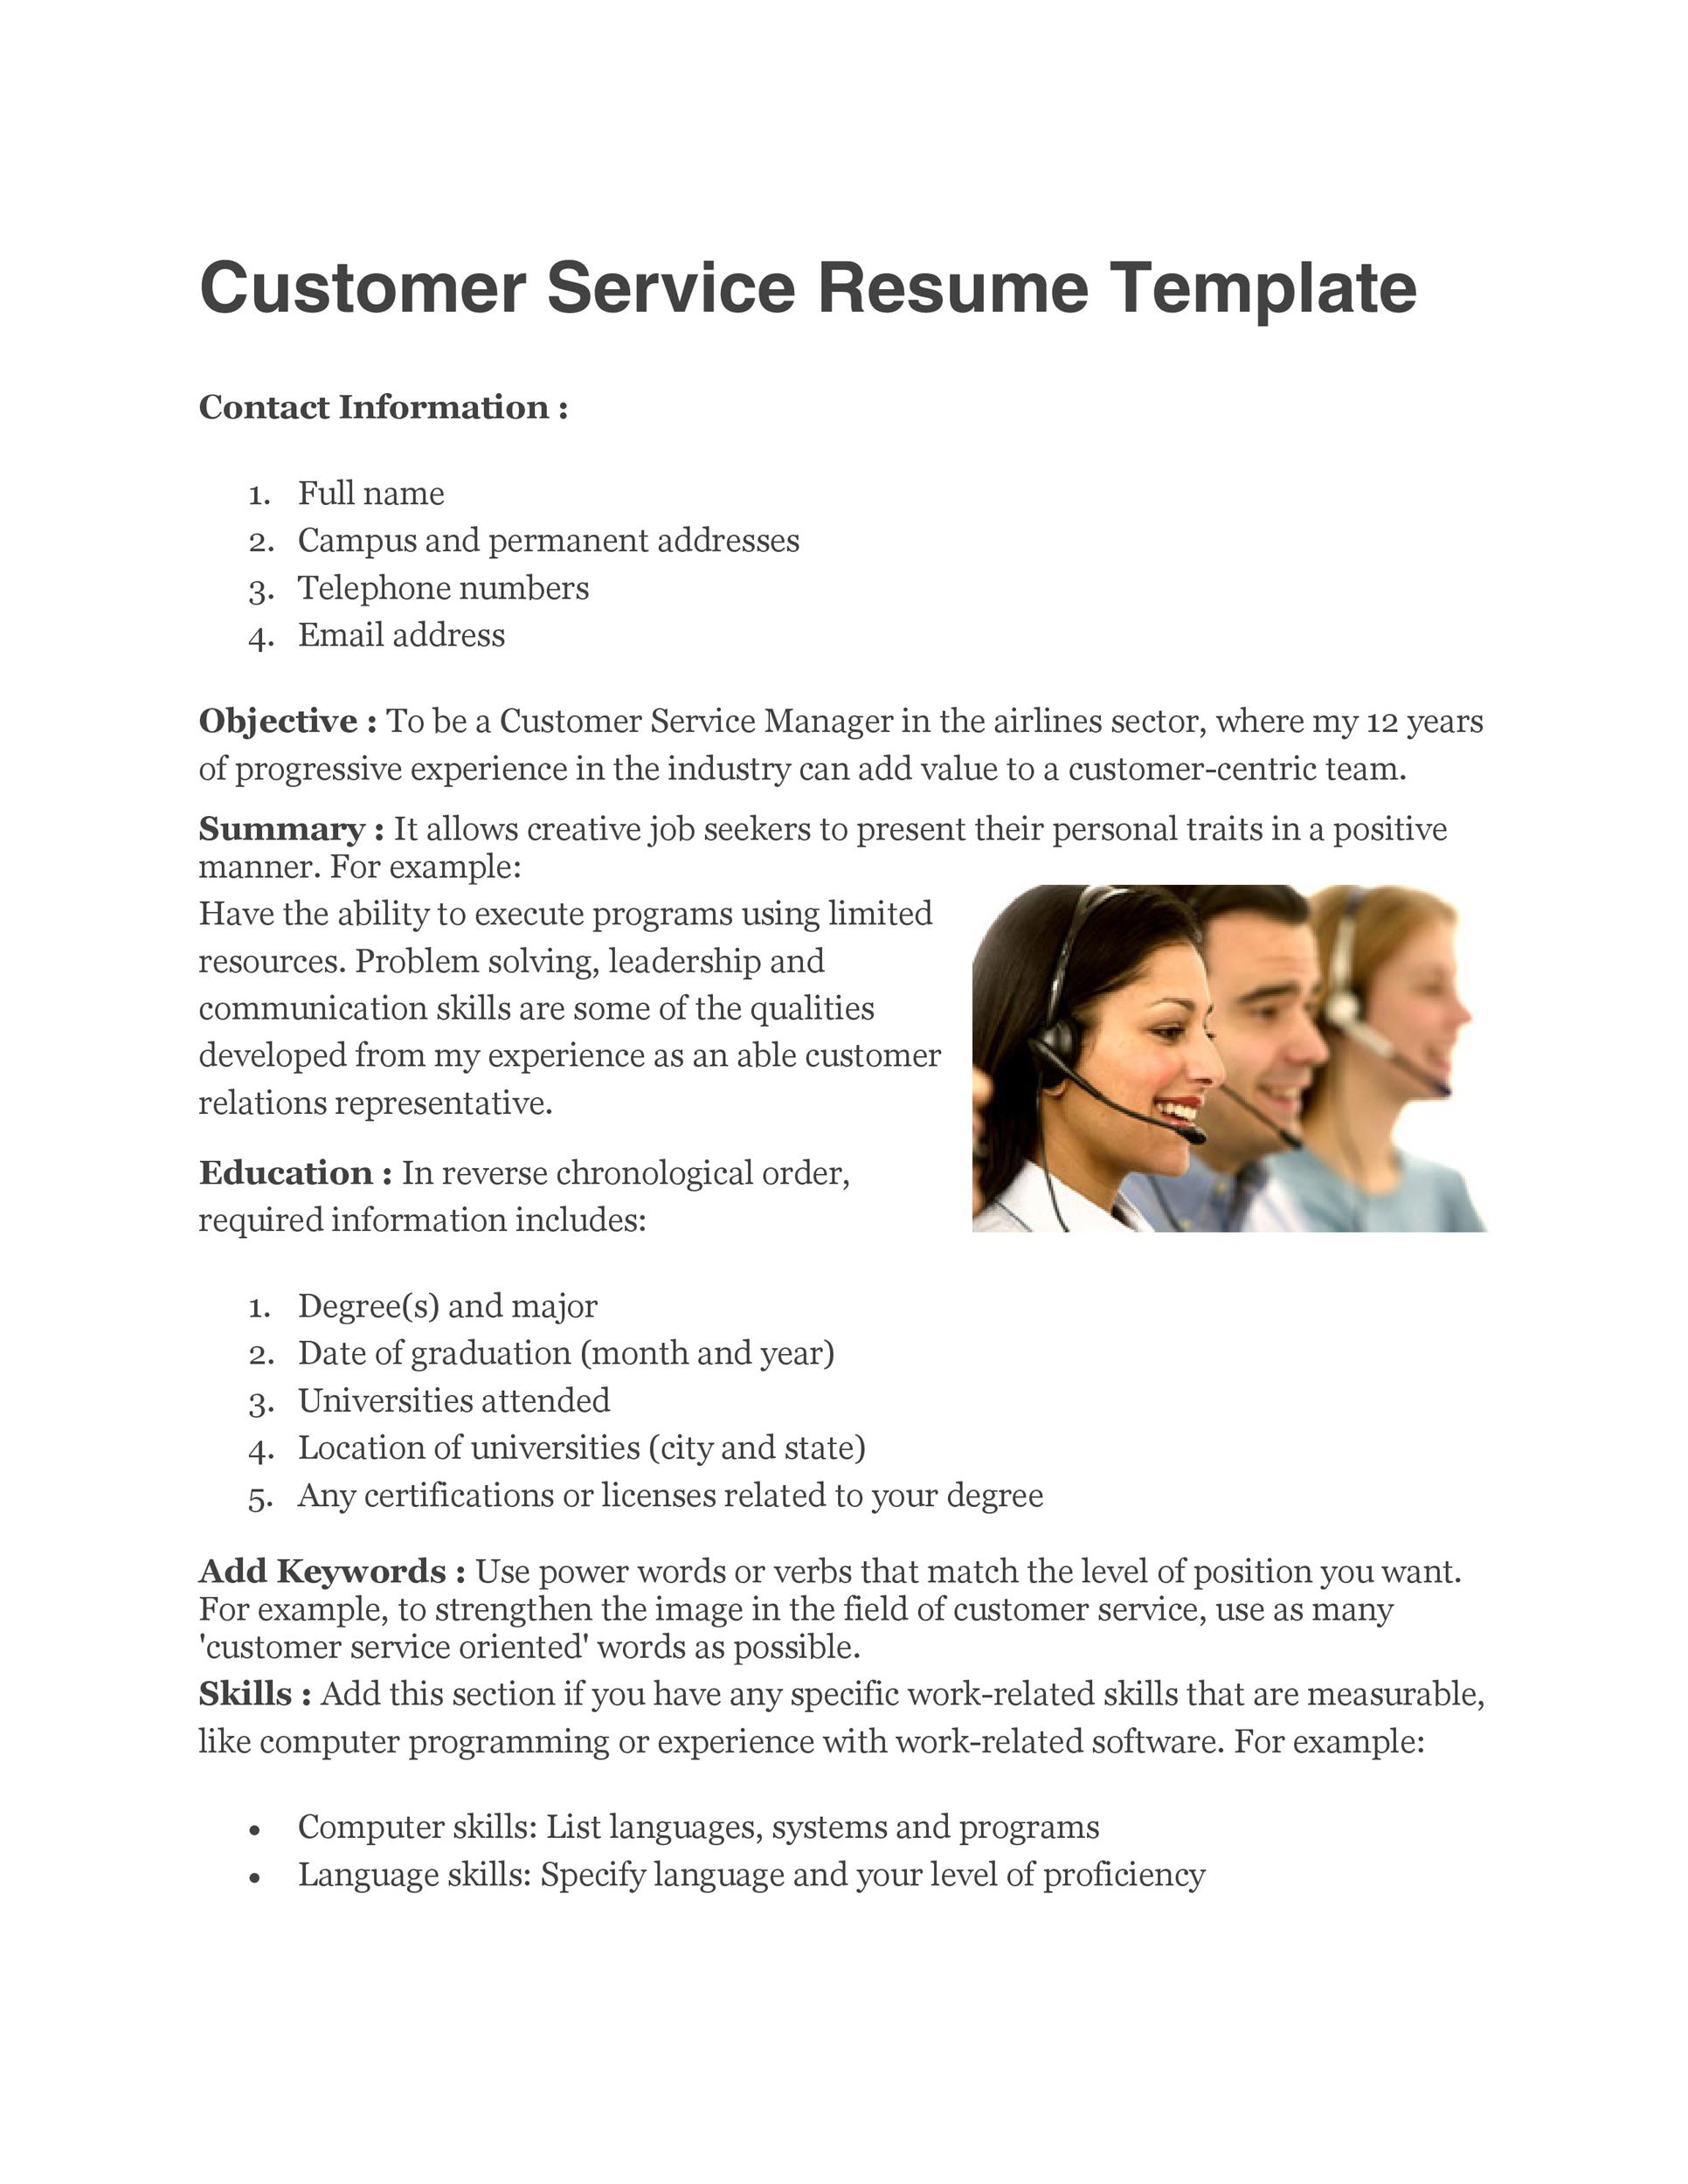 resume words for customer service Free Microsoft Word Doc Professional Job  Resume and CV Templates SlideShare